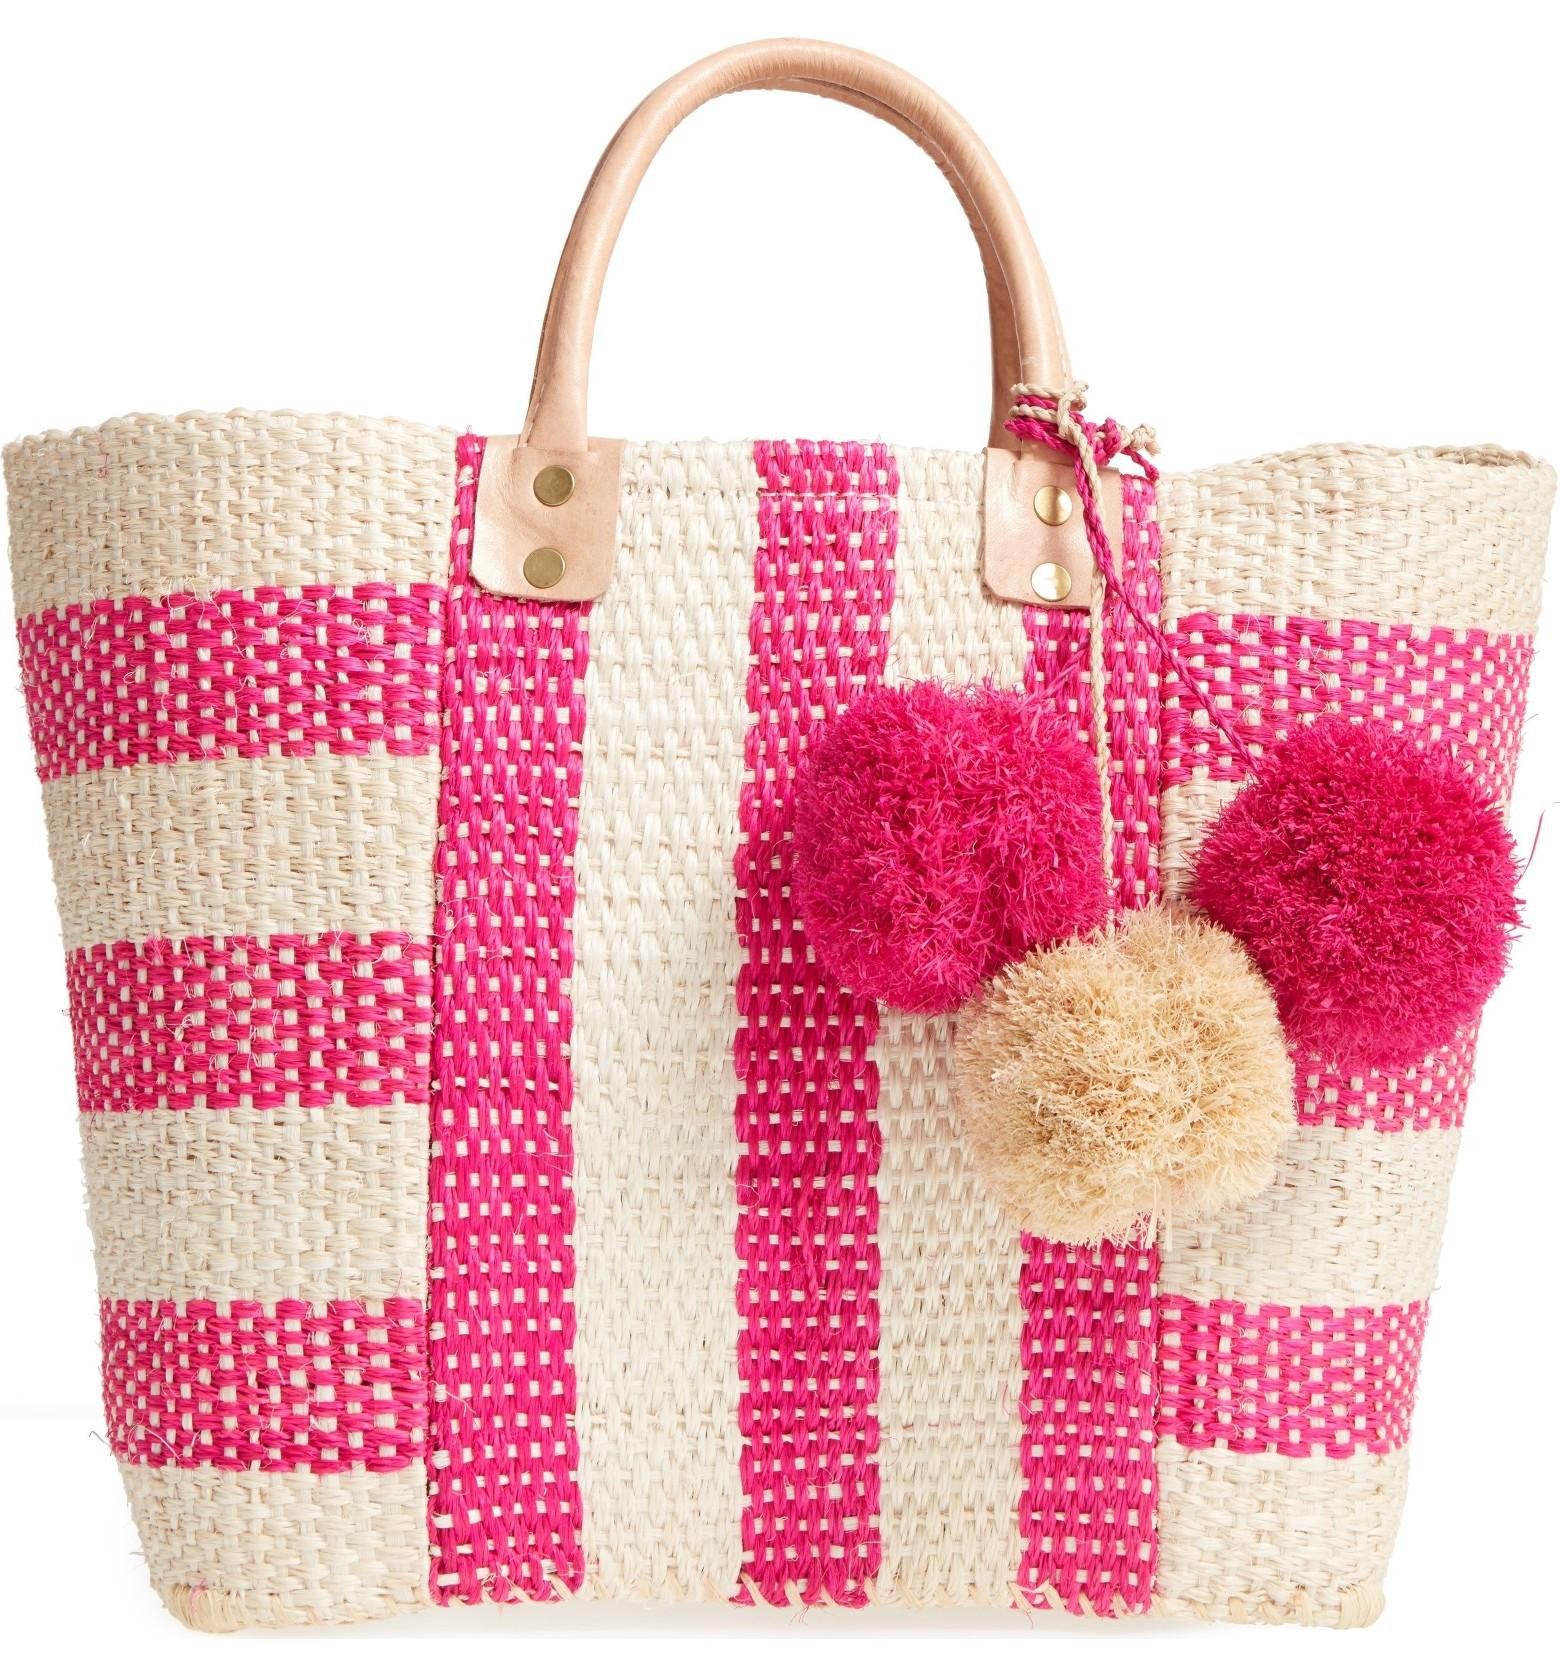 d147dc08fafc This WOVEN TOTE is so cute